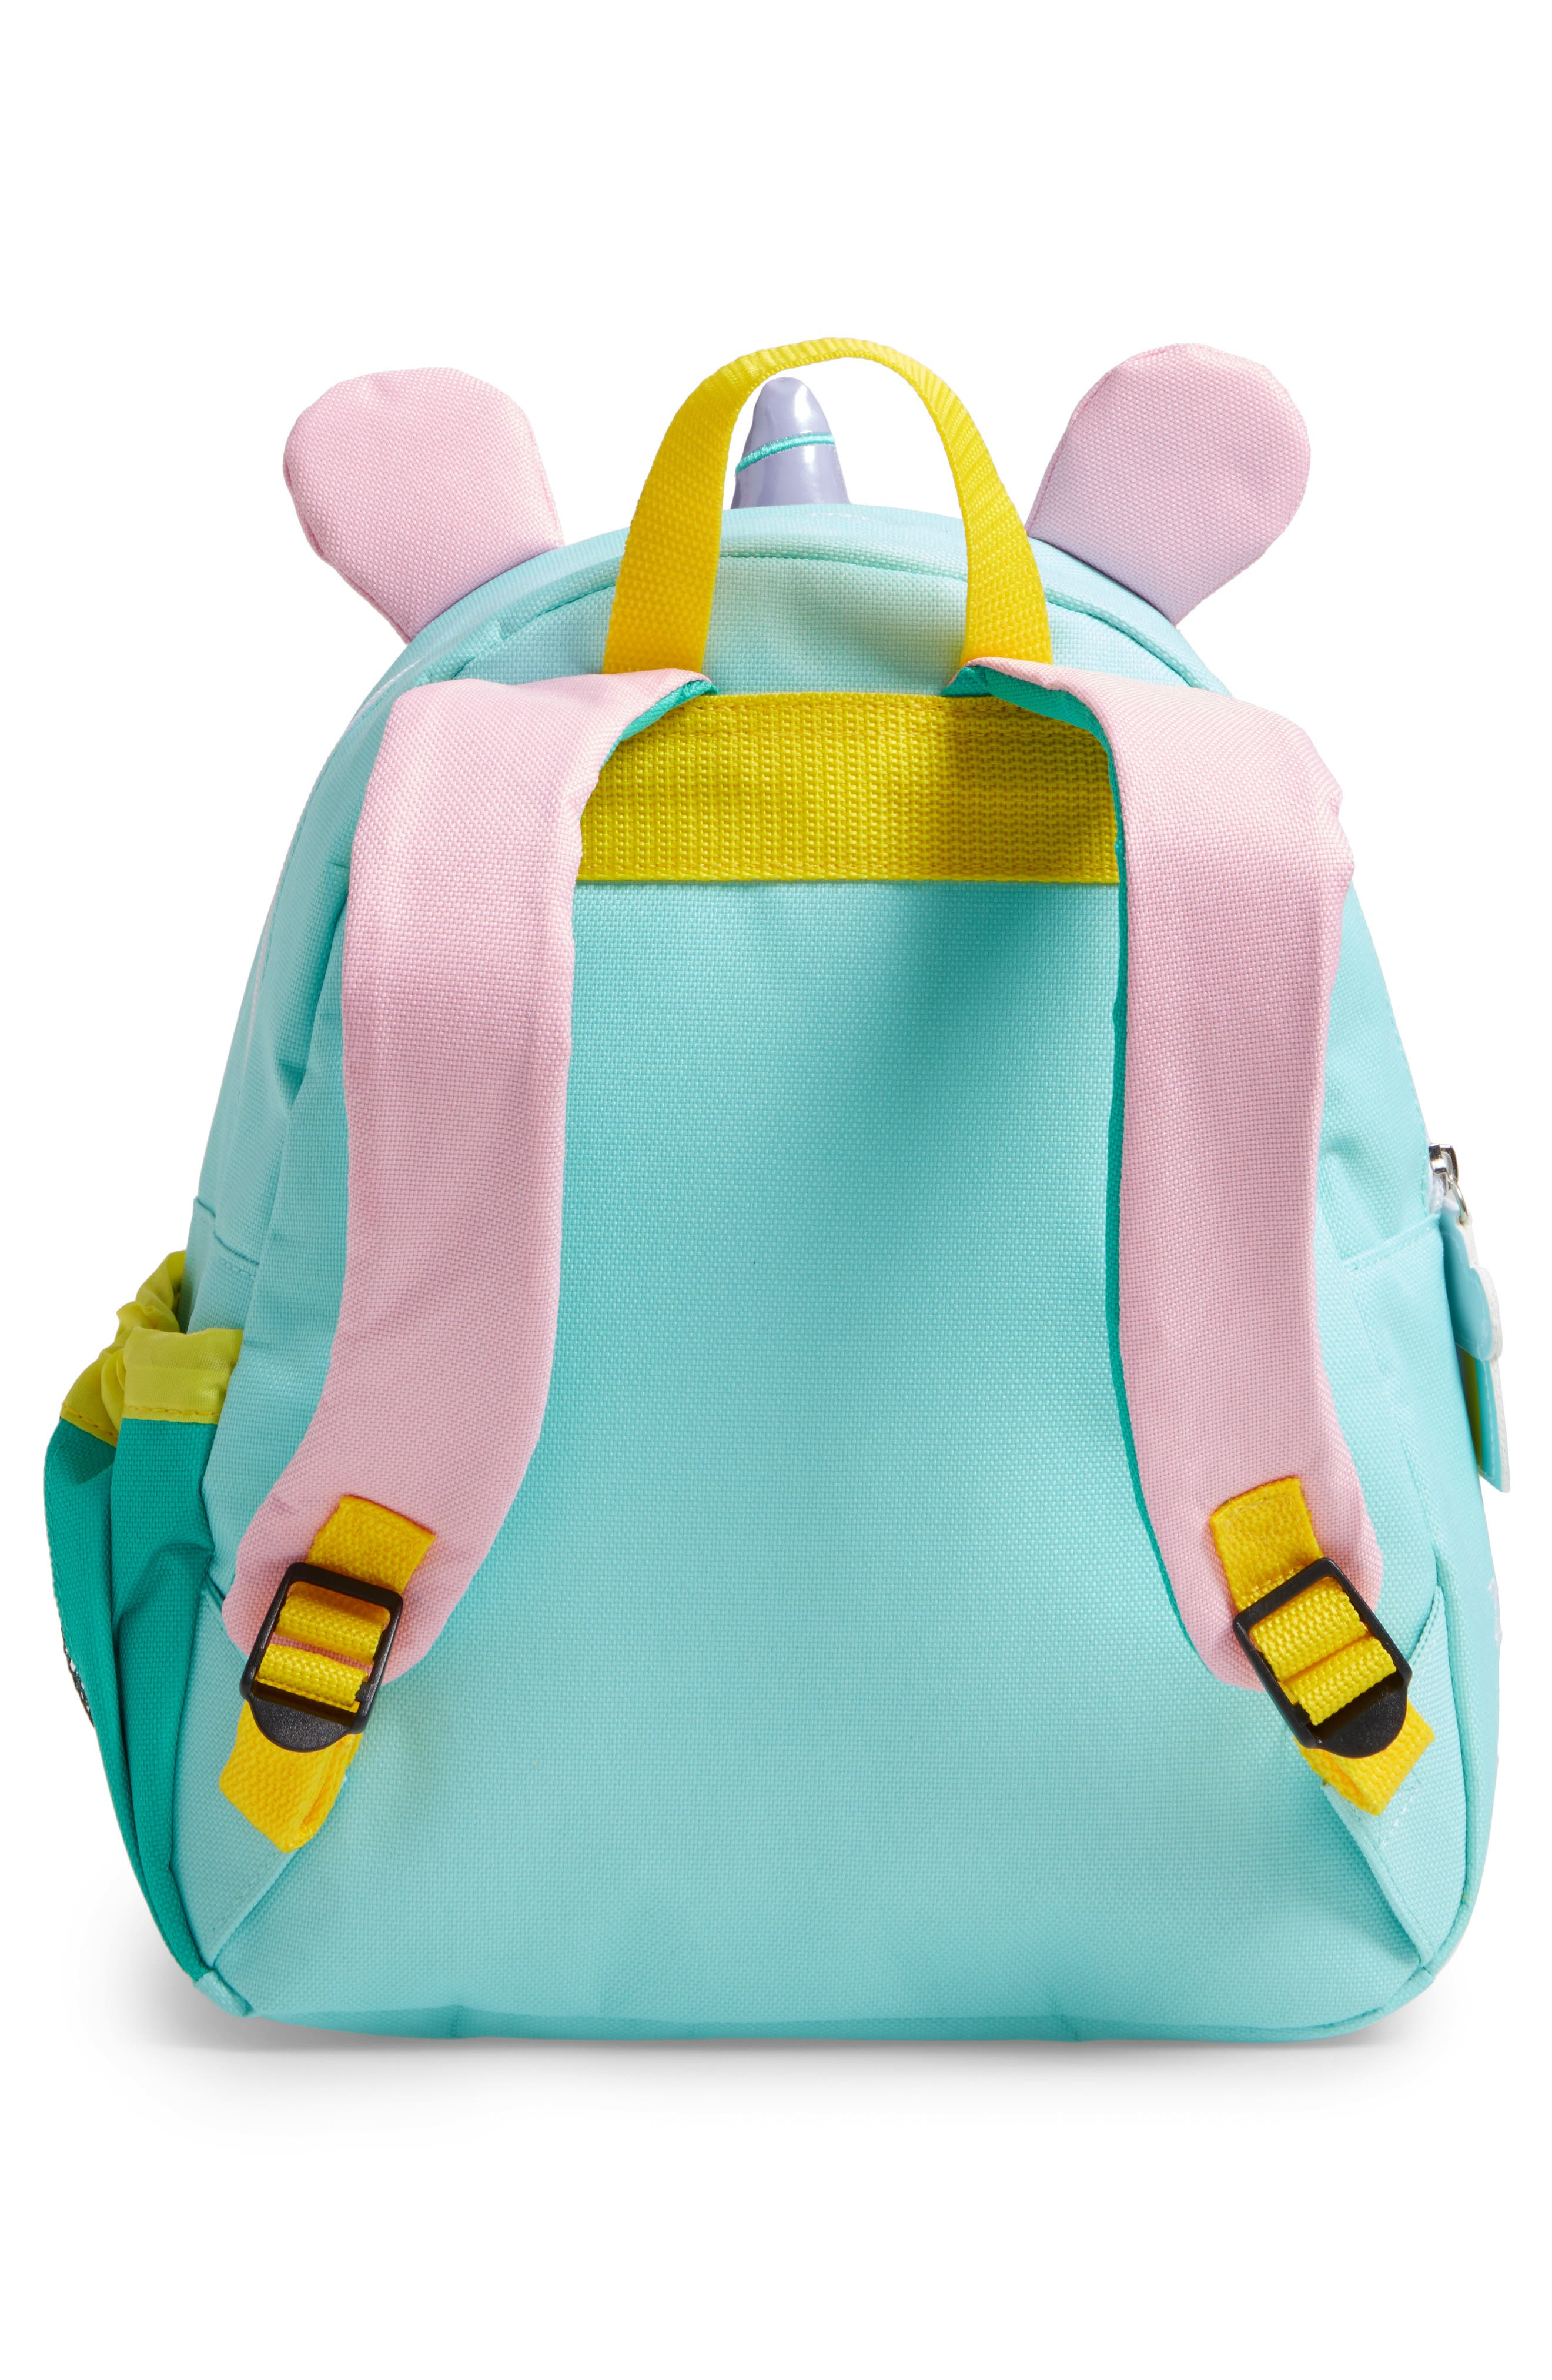 Zoo Pack Backpack,                             Alternate thumbnail 3, color,                             YELLOW